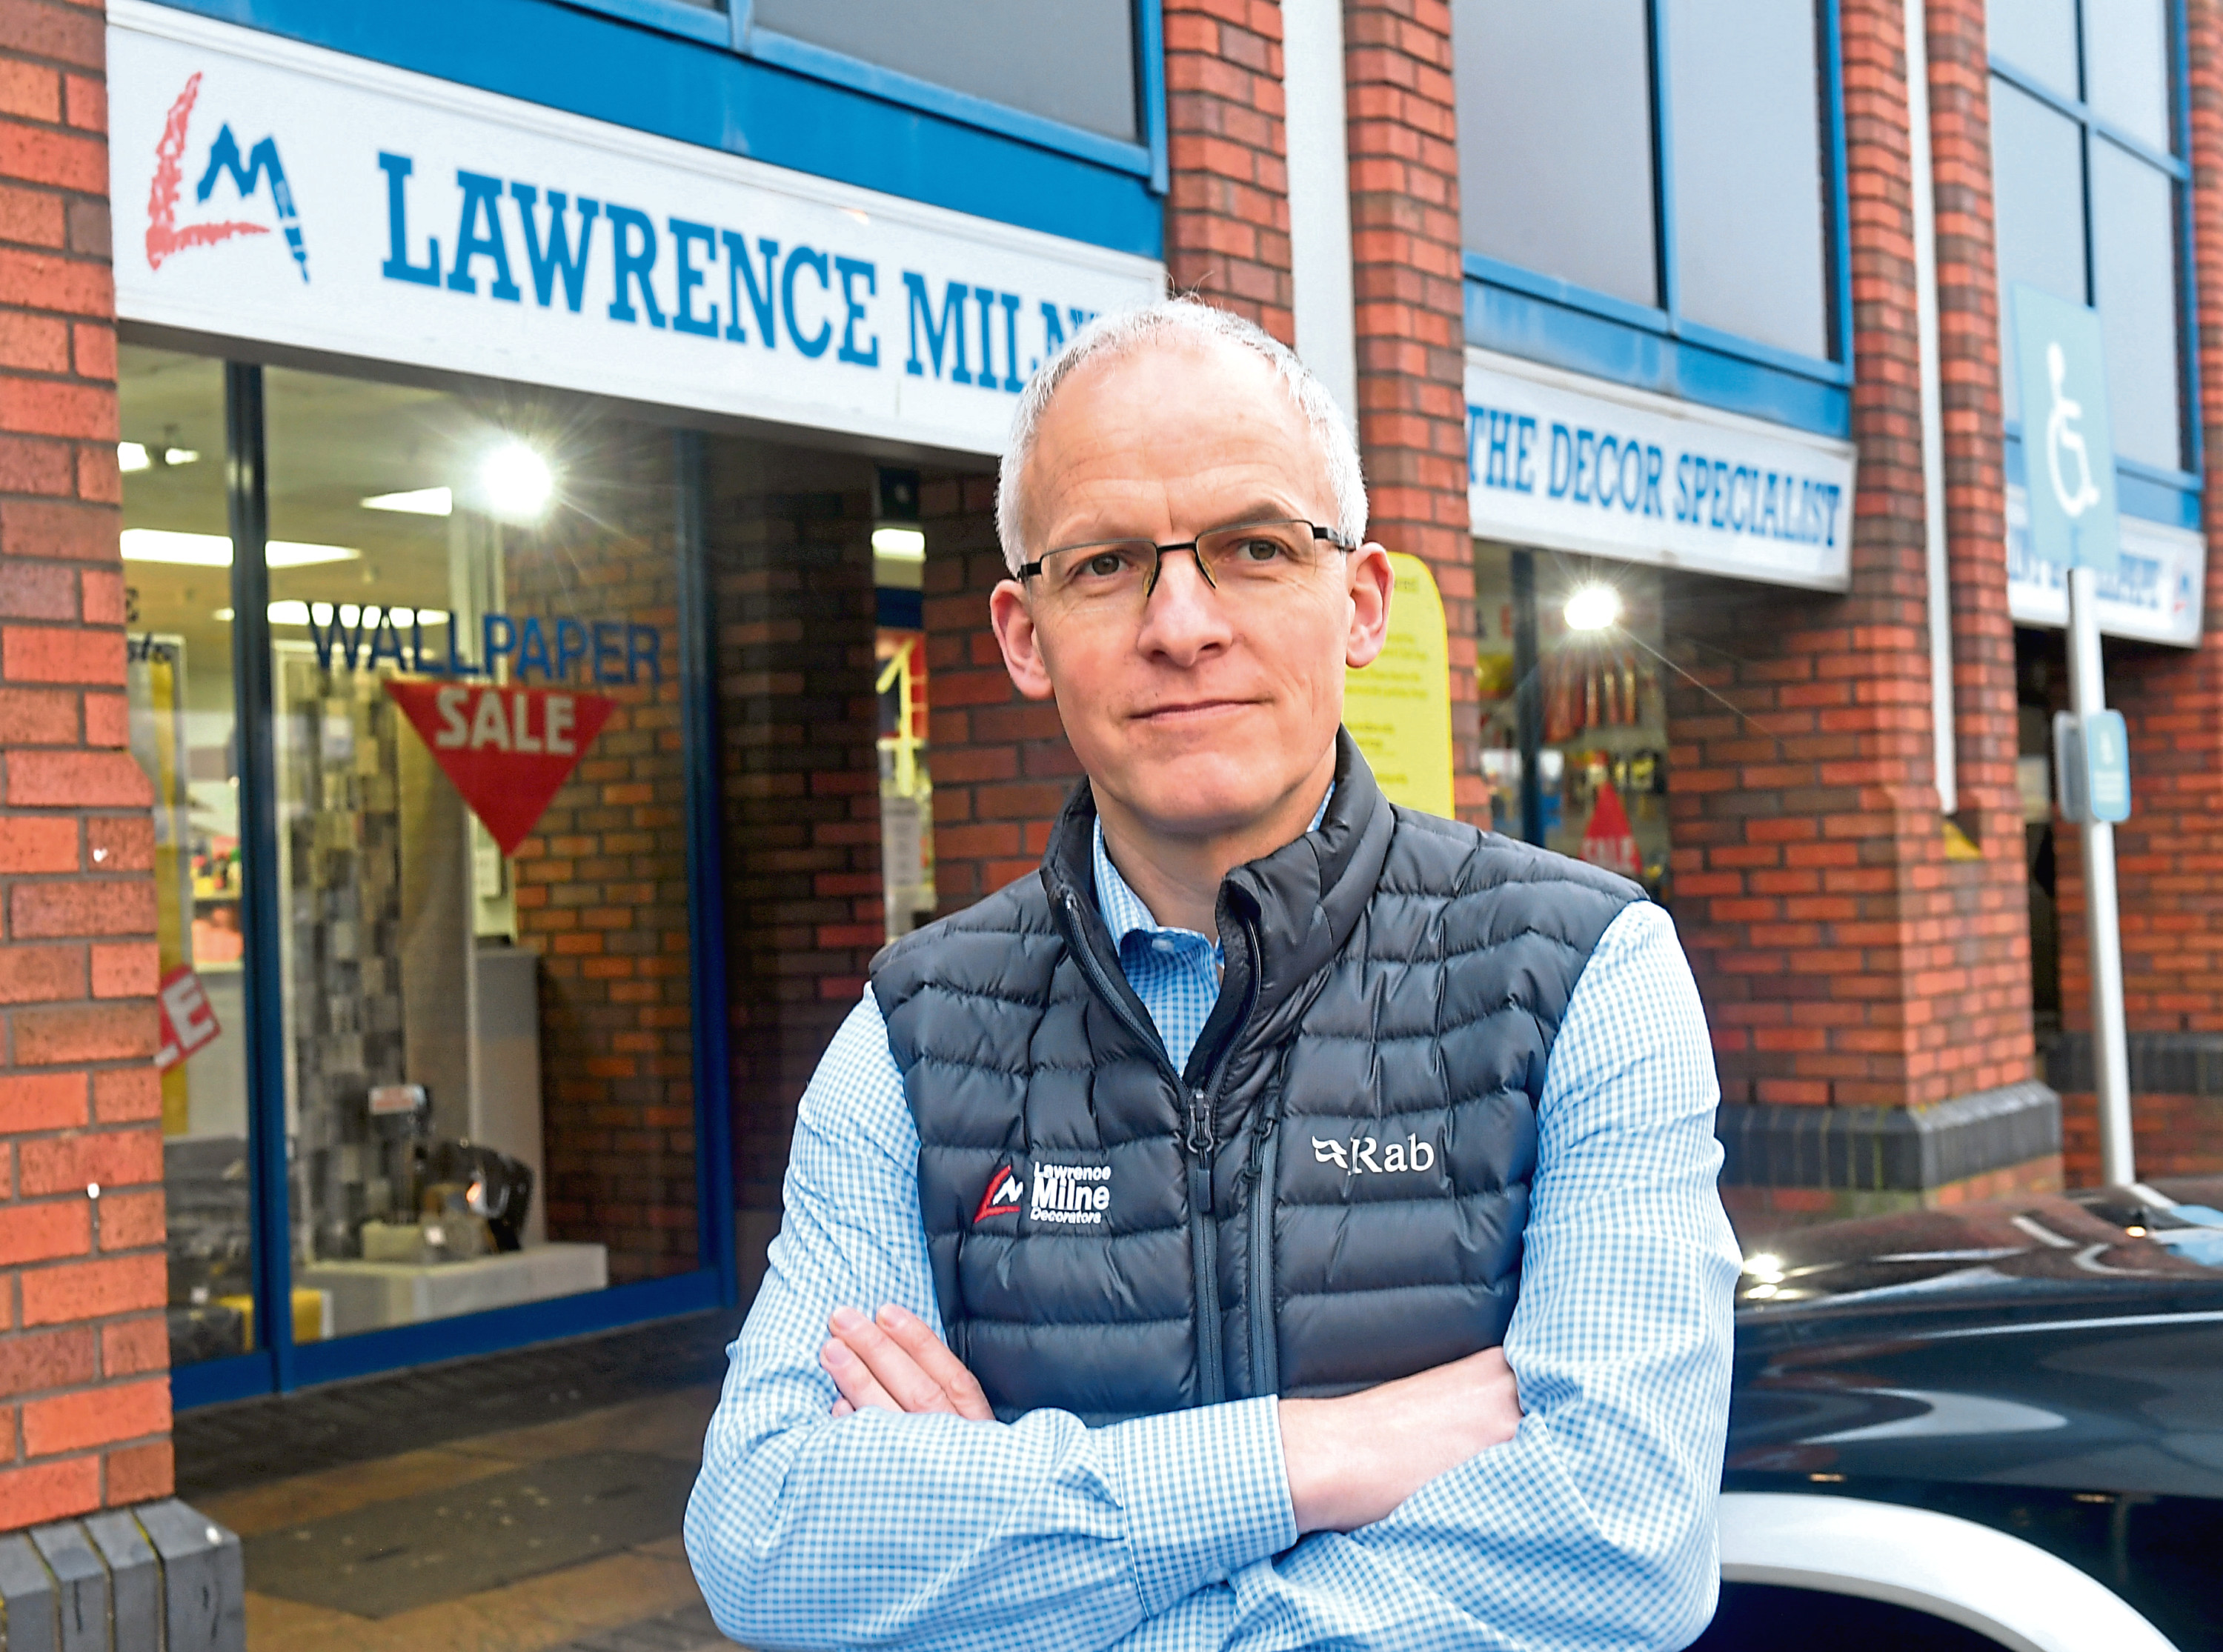 The Aberdeen Lawrence and Milne Decorators store is closing down after operating for around 40 years due to rising costs and rough trading conditions